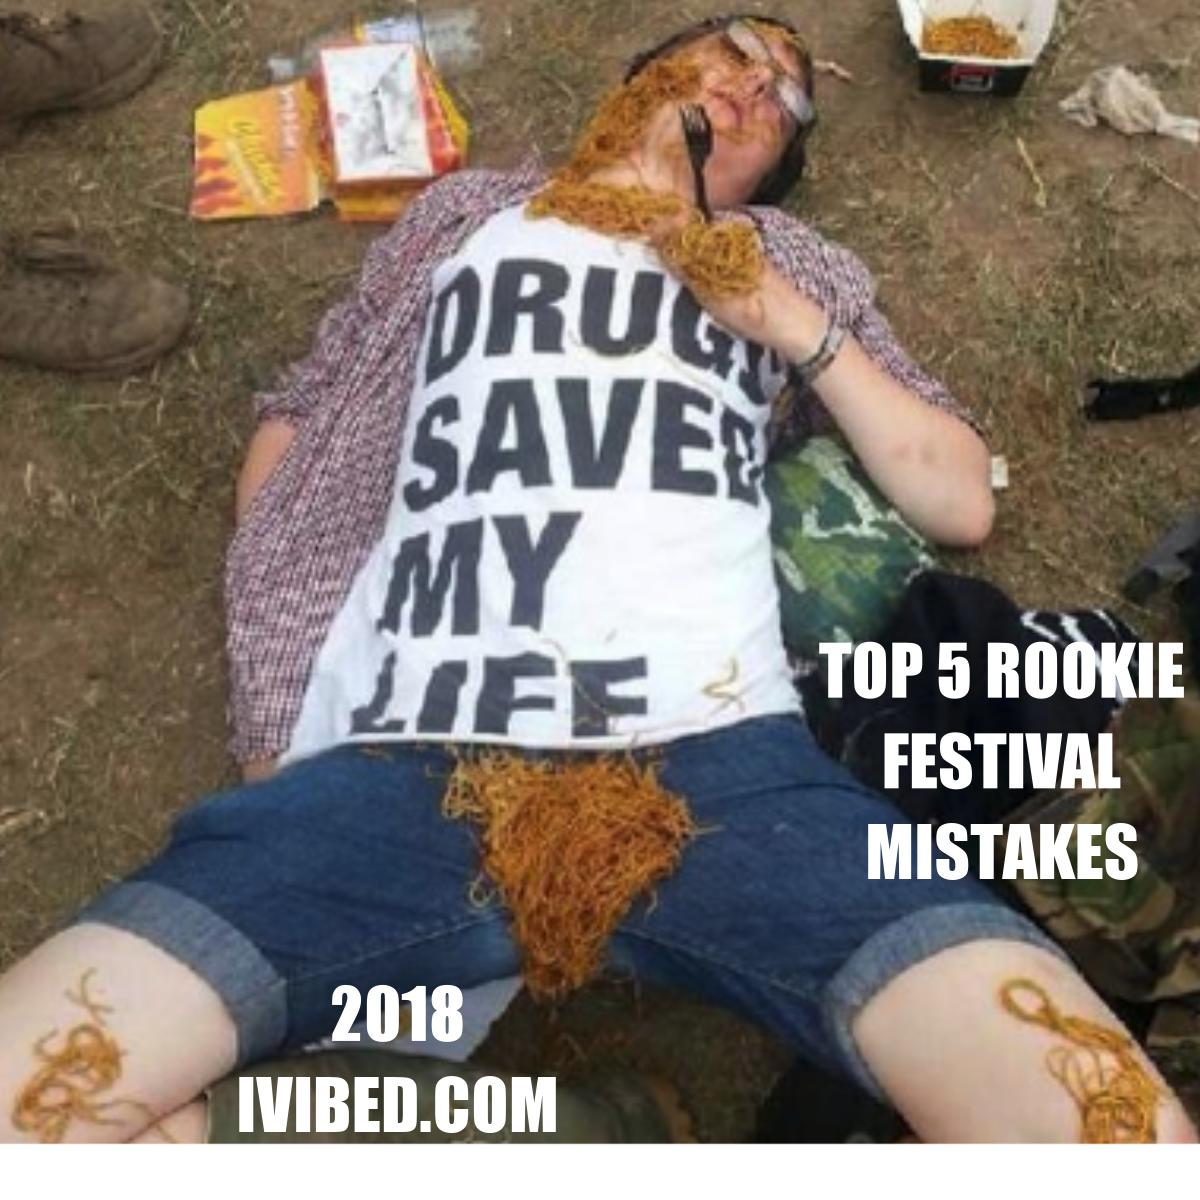 TOP 5 MISTAKES I MADE GETTING READY FOR MY FIRST ELECTRONIC MUSIC FESTIVAL